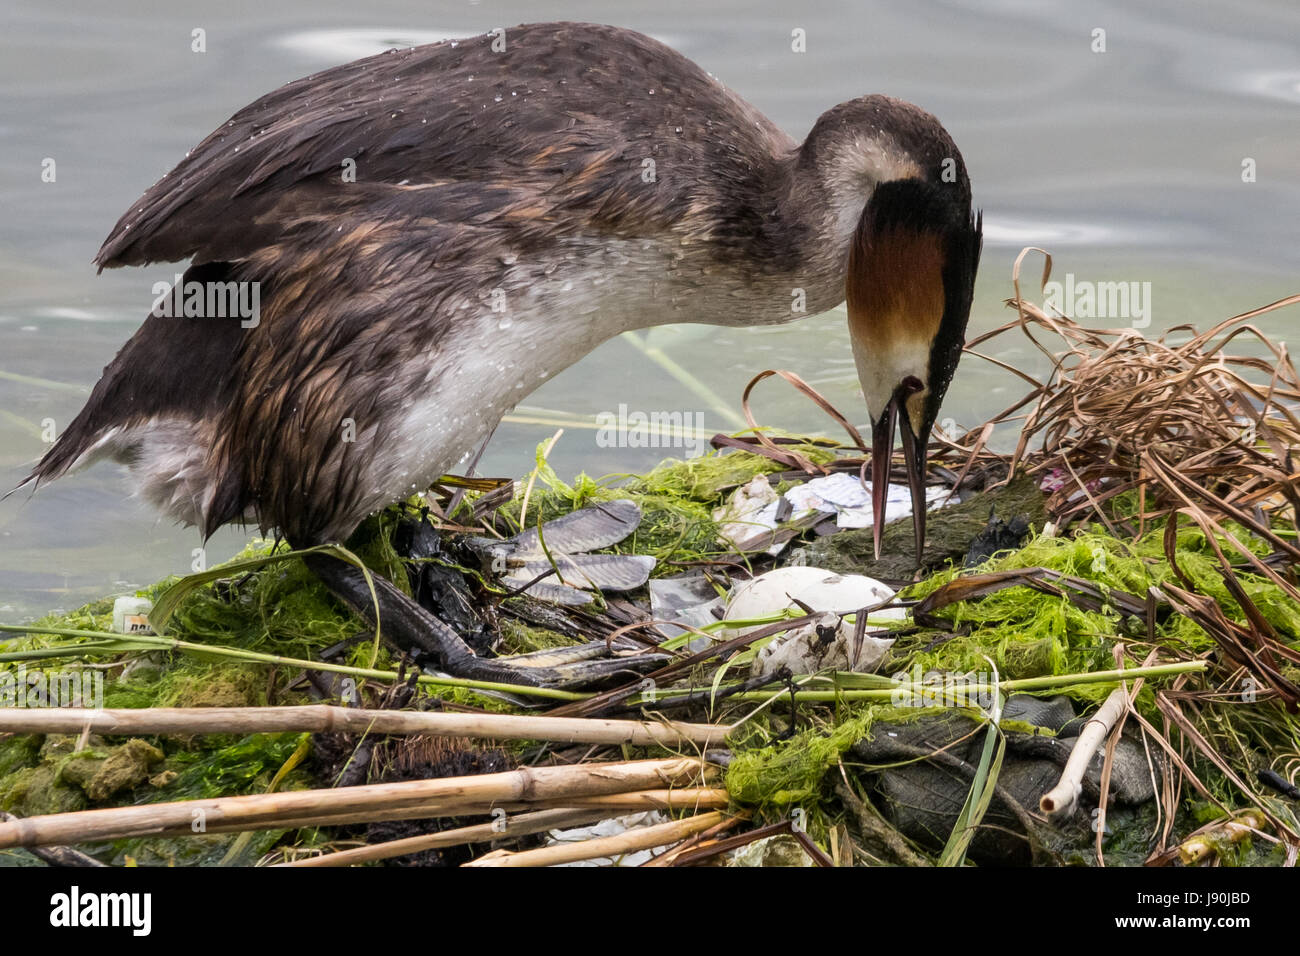 London, UK. 30th May, 2017. A Great Crested Grebe turns her eggs on Canada Water pond. © Guy Corbishley/Alamy - Stock Image